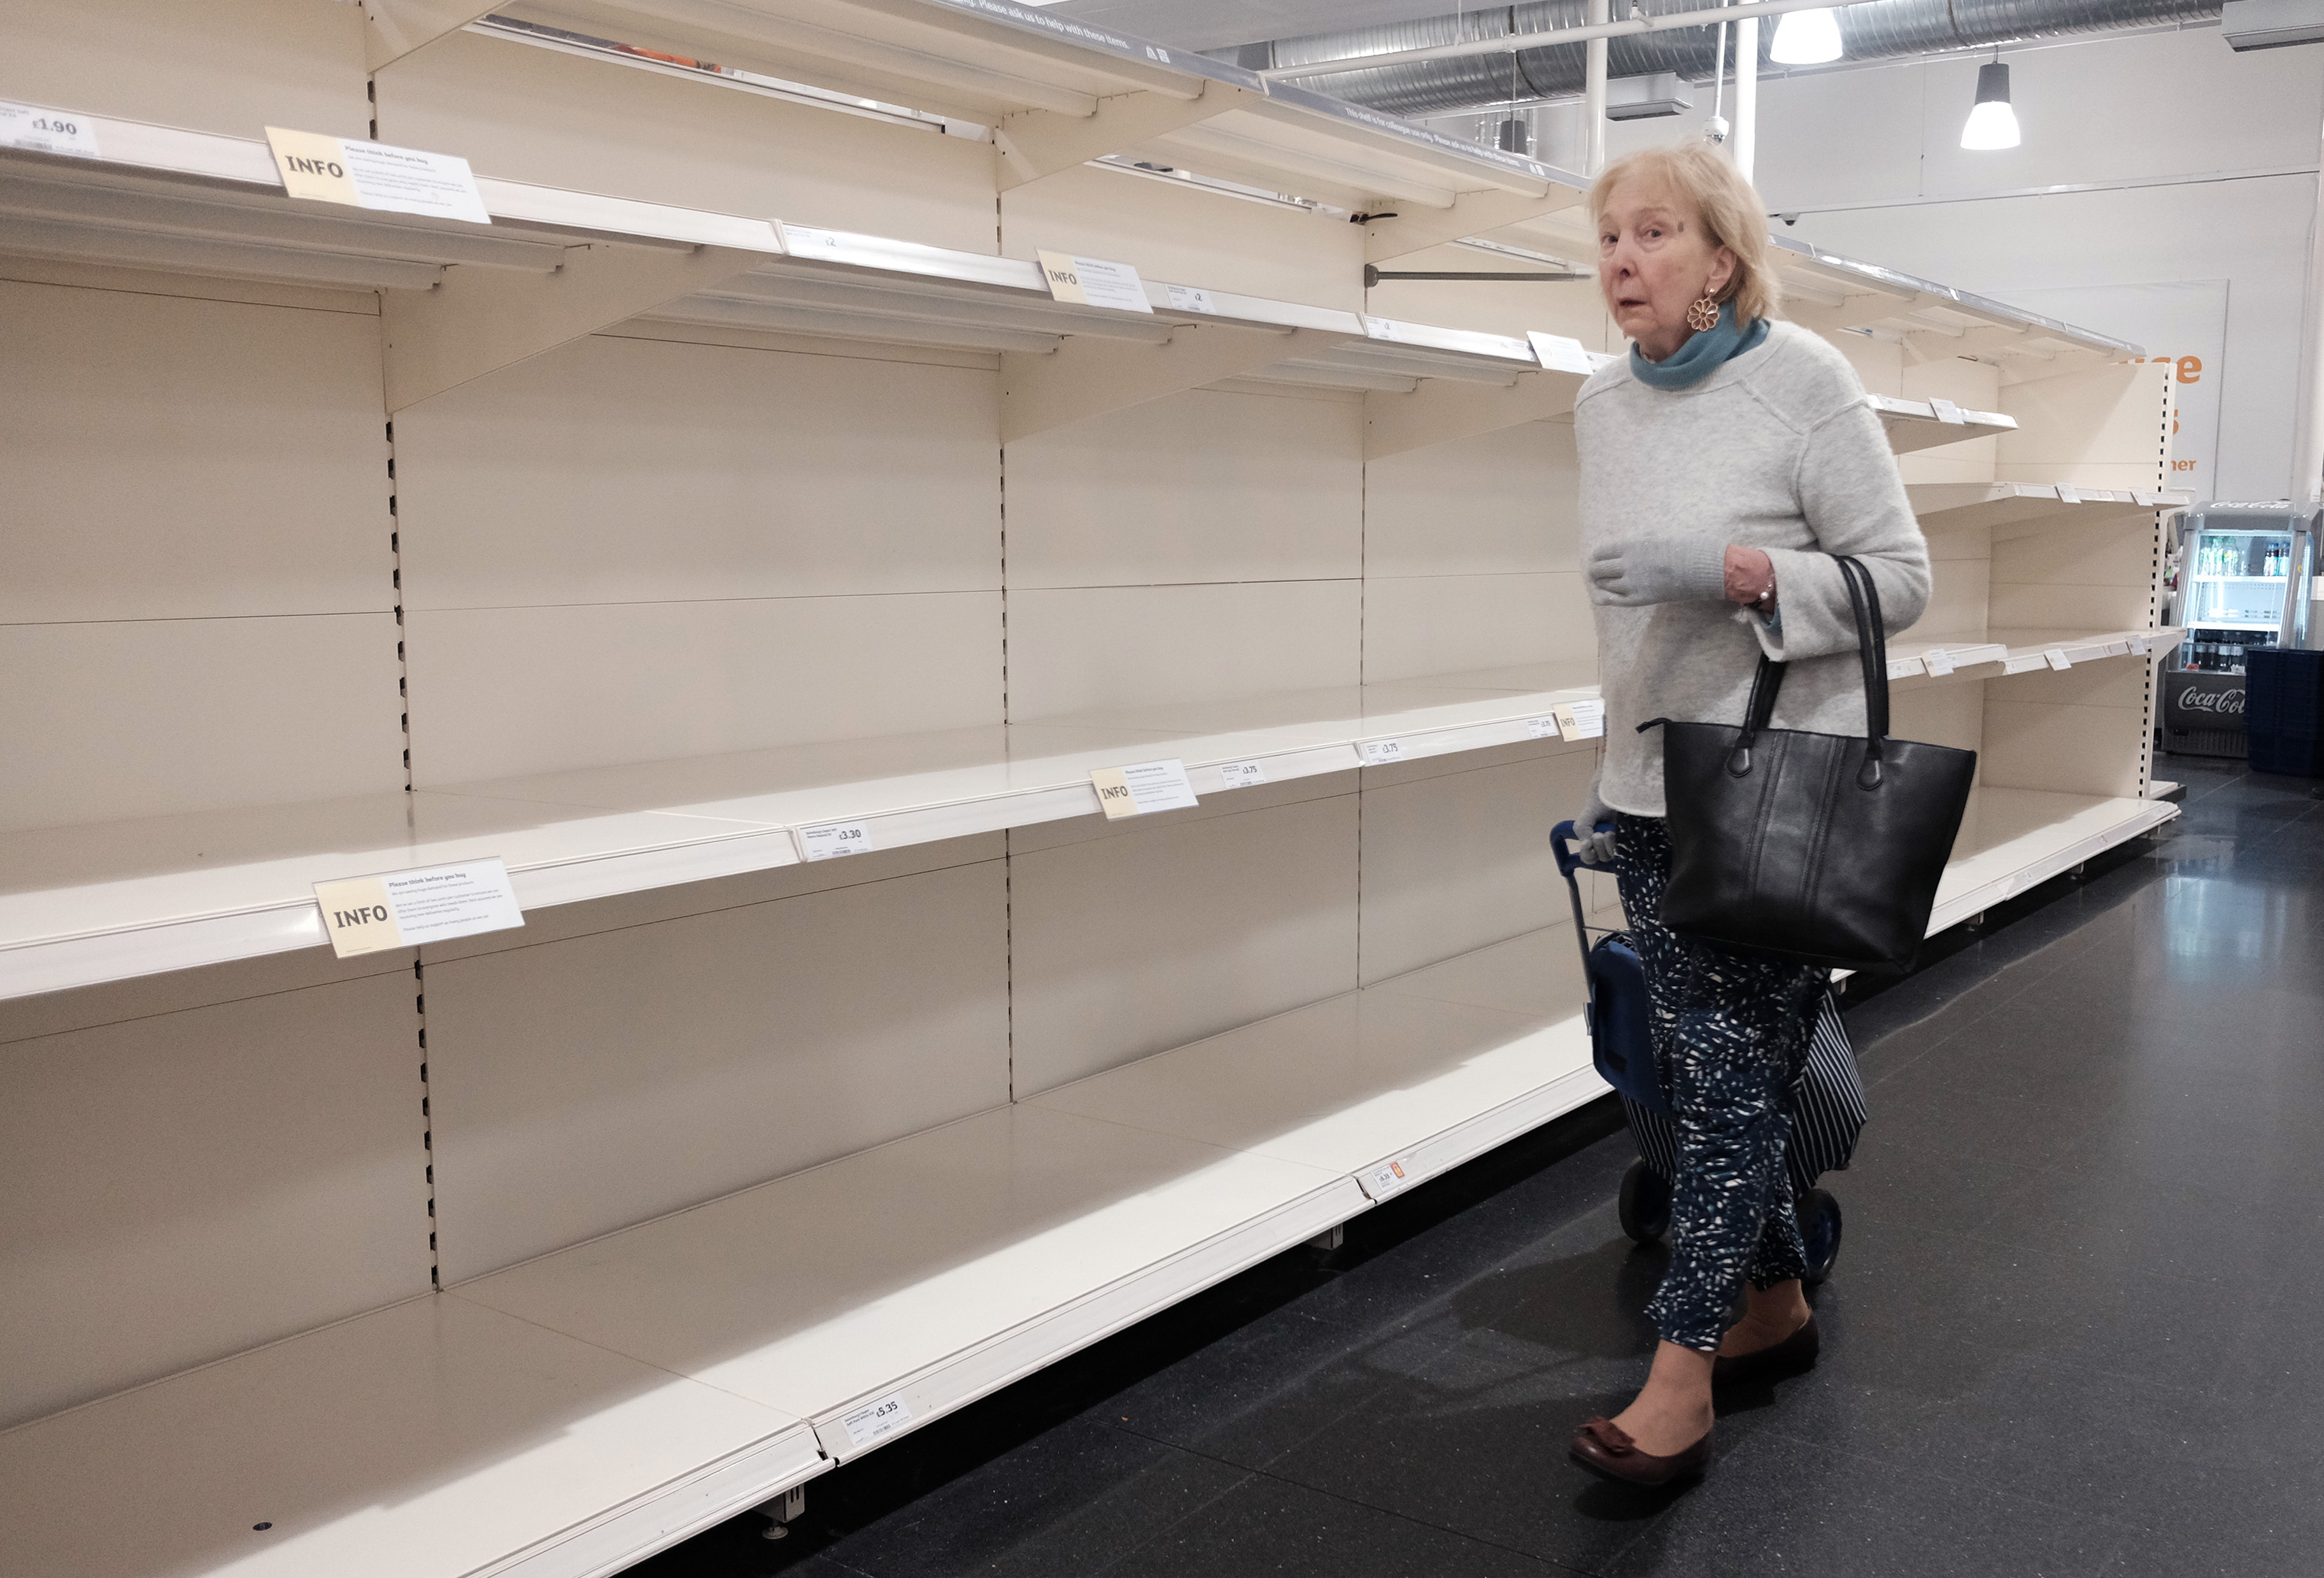 A lady looking at empty shelves in a Sainsbury's store in London, as the death toll from coronavirus in the UK reached 71 people.